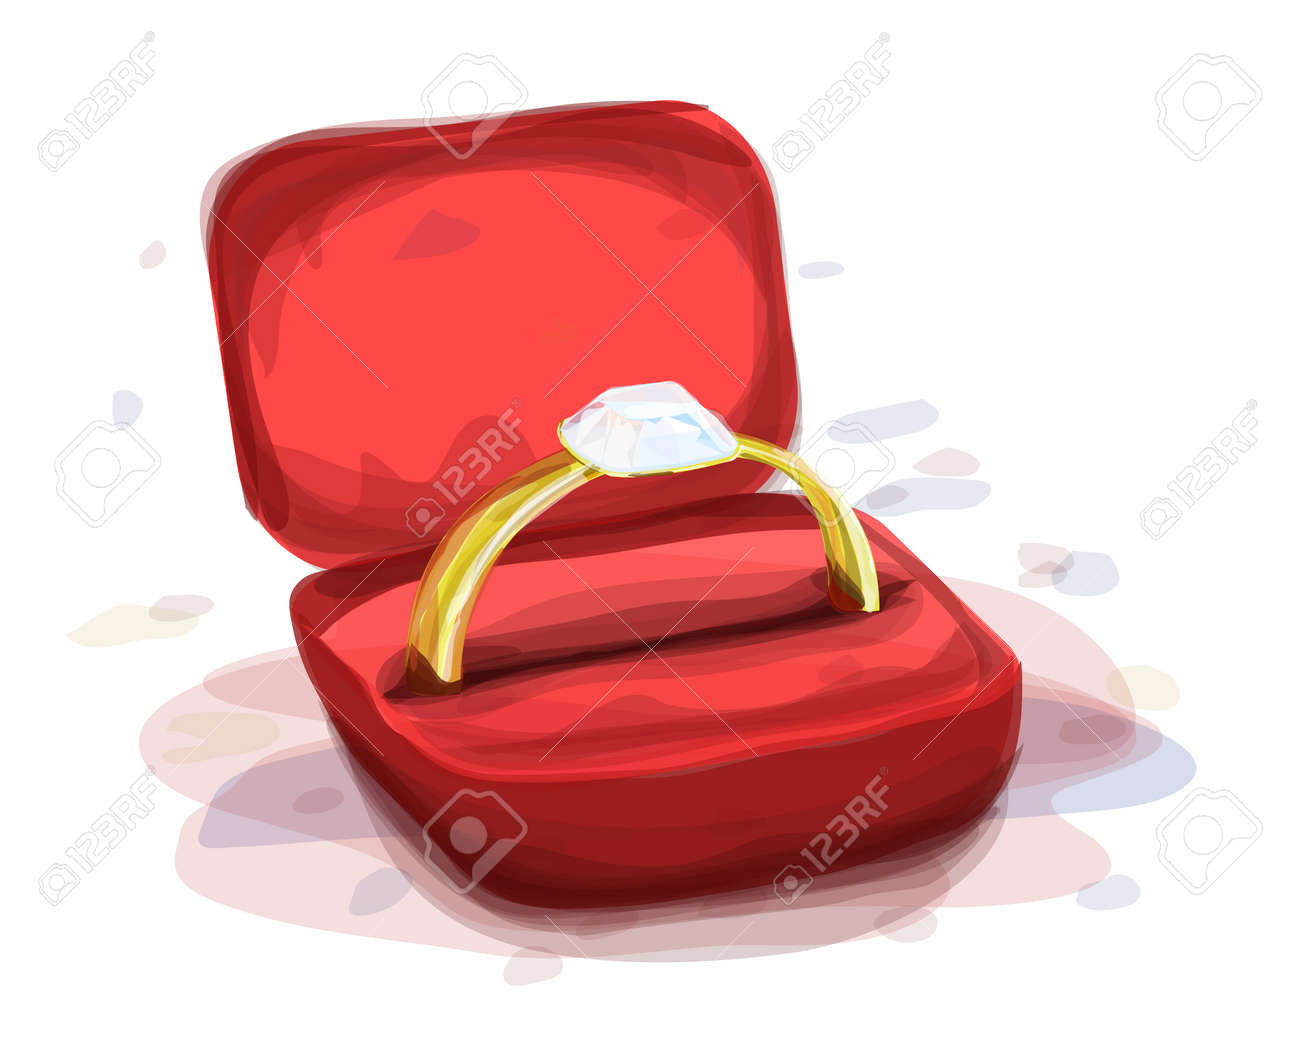 diamond ring in the red box, watercolor style, eps10 vector illustration Stock Vector - 15251808